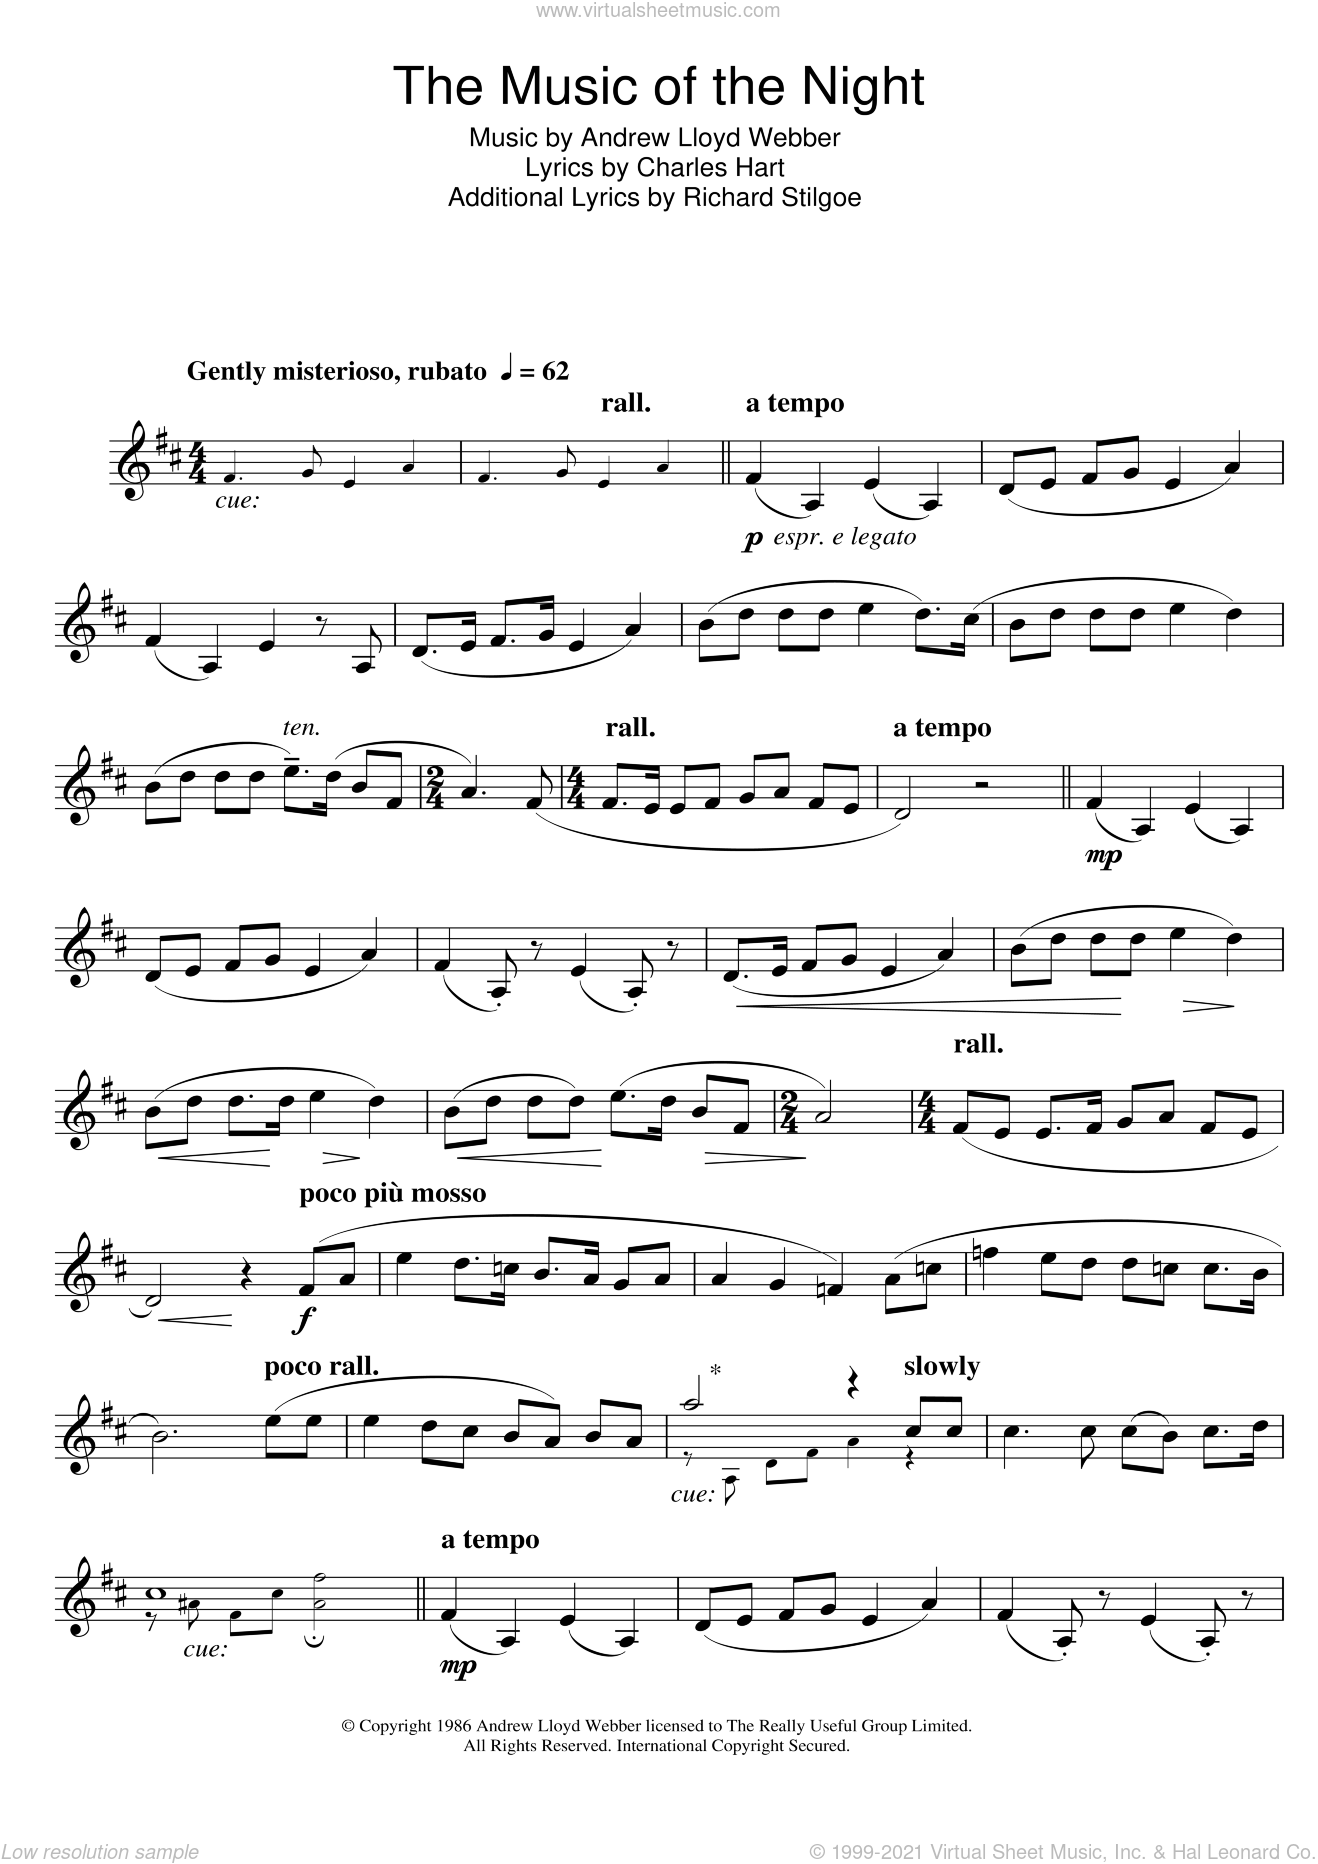 The Music Of The Night (from The Phantom Of The Opera) sheet music for clarinet solo by Andrew Lloyd Webber, Charles Hart and Richard Stilgoe, intermediate skill level